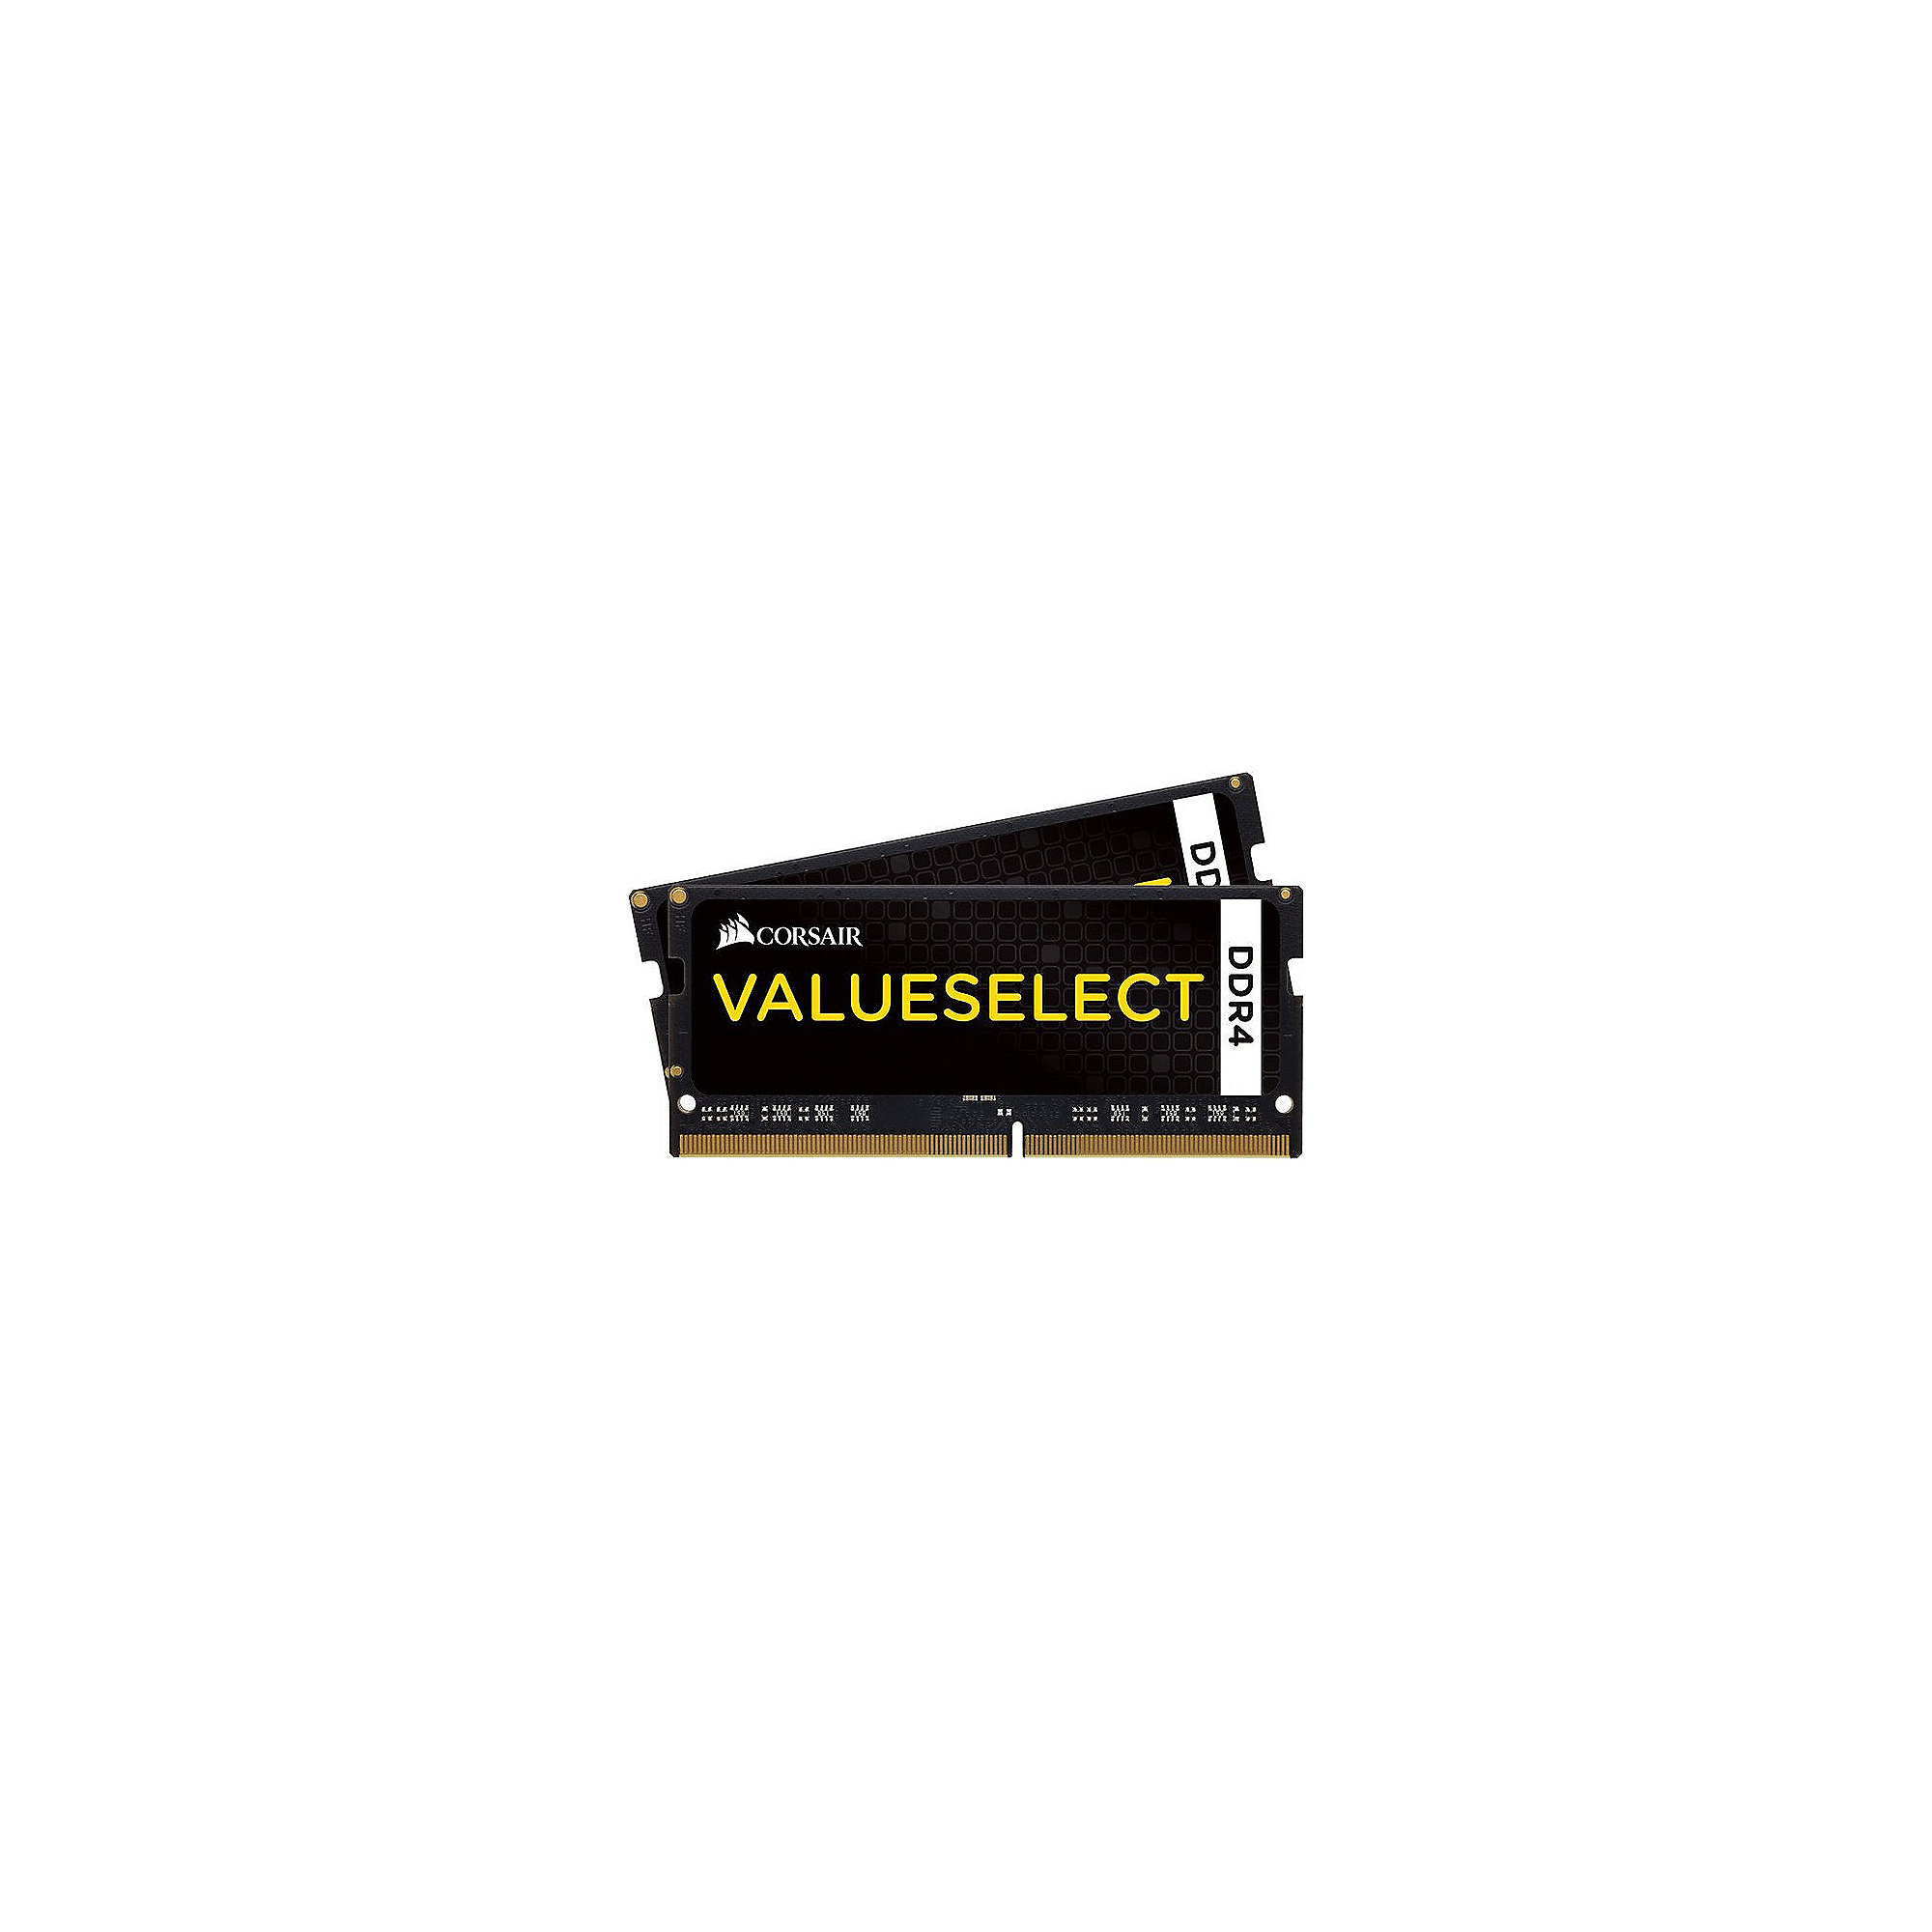 8GB (2x4GB) Corsair Value Select DDR4-2133 MHz CL 15 SODIMM Notebookspeicher